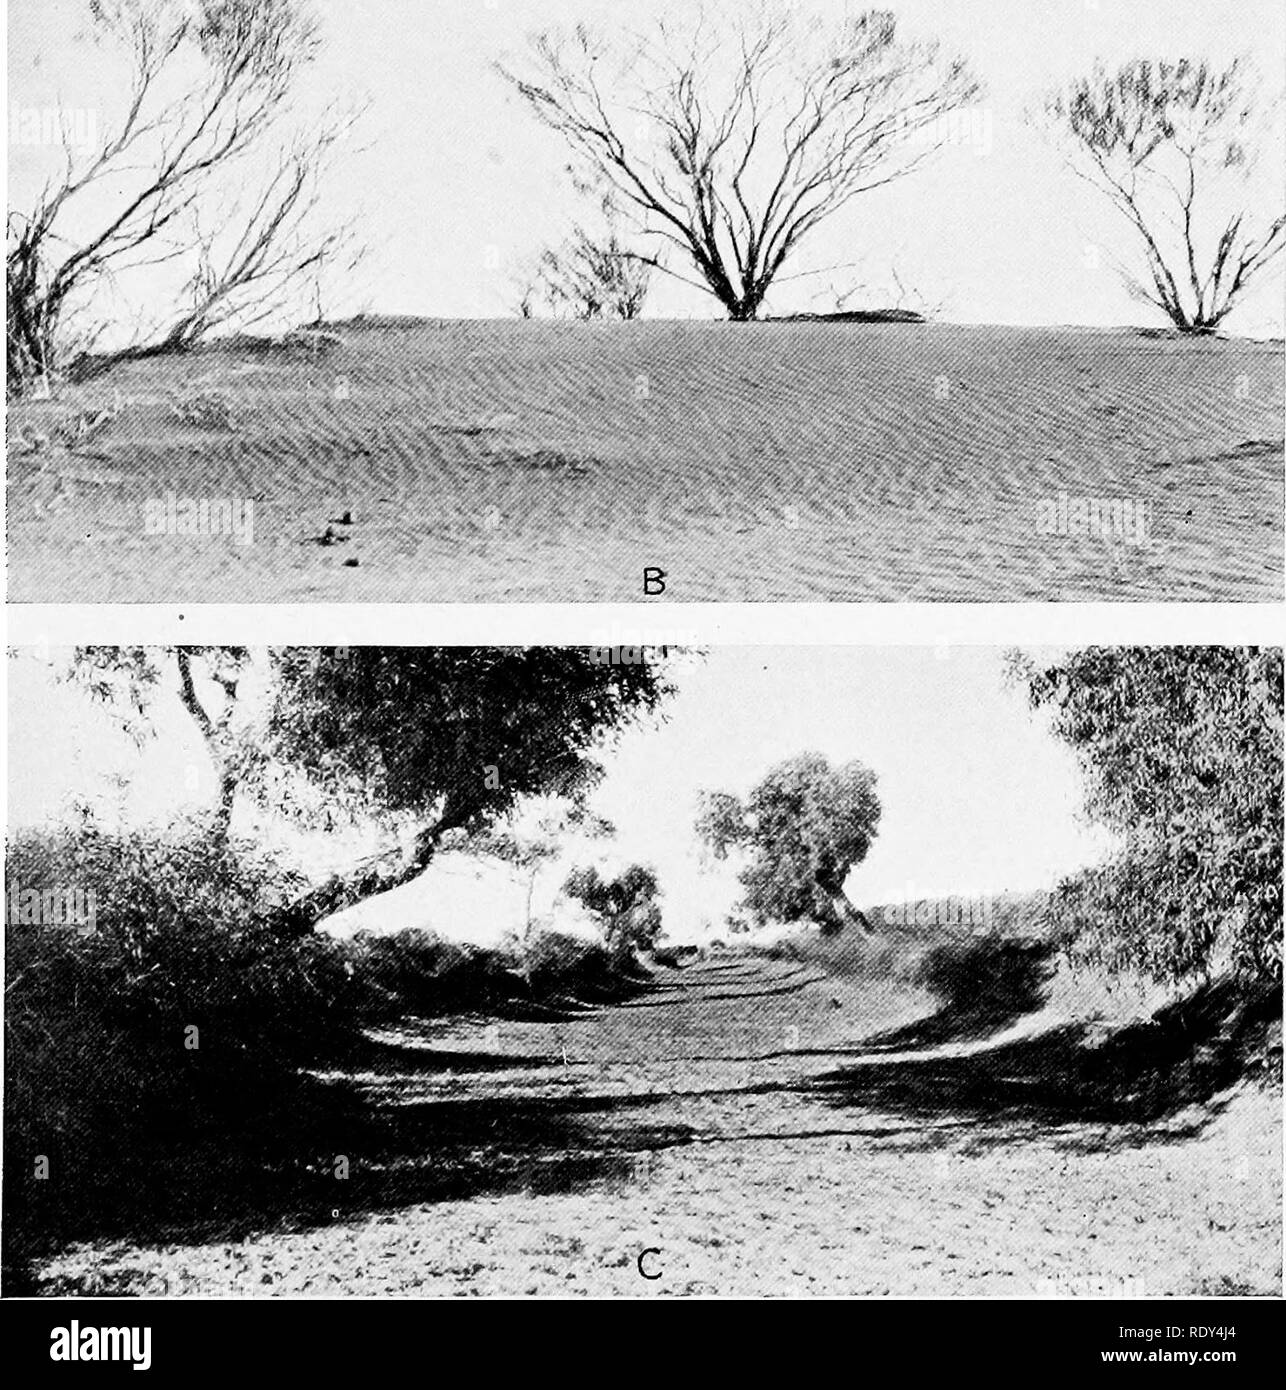 . Plant habits and habitats in the arid portions of South Australia. Plant ecology; Botany; Desert plants. ftE*'. A. Acacia tetTogonophylla, near west Base of sandhills east of Oodnadatta. B. Acacia linophylla on sandhills east of Oodnadatta. C. Short channel, Neales River, with Eucalyptus rostrata and Acacia stenophylla, small shrubs, on the banks, Oodnadatta.. Please note that these images are extracted from scanned page images that may have been digitally enhanced for readability - coloration and appearance of these illustrations may not perfectly resemble the original work.. Cannon, Willia - Stock Image